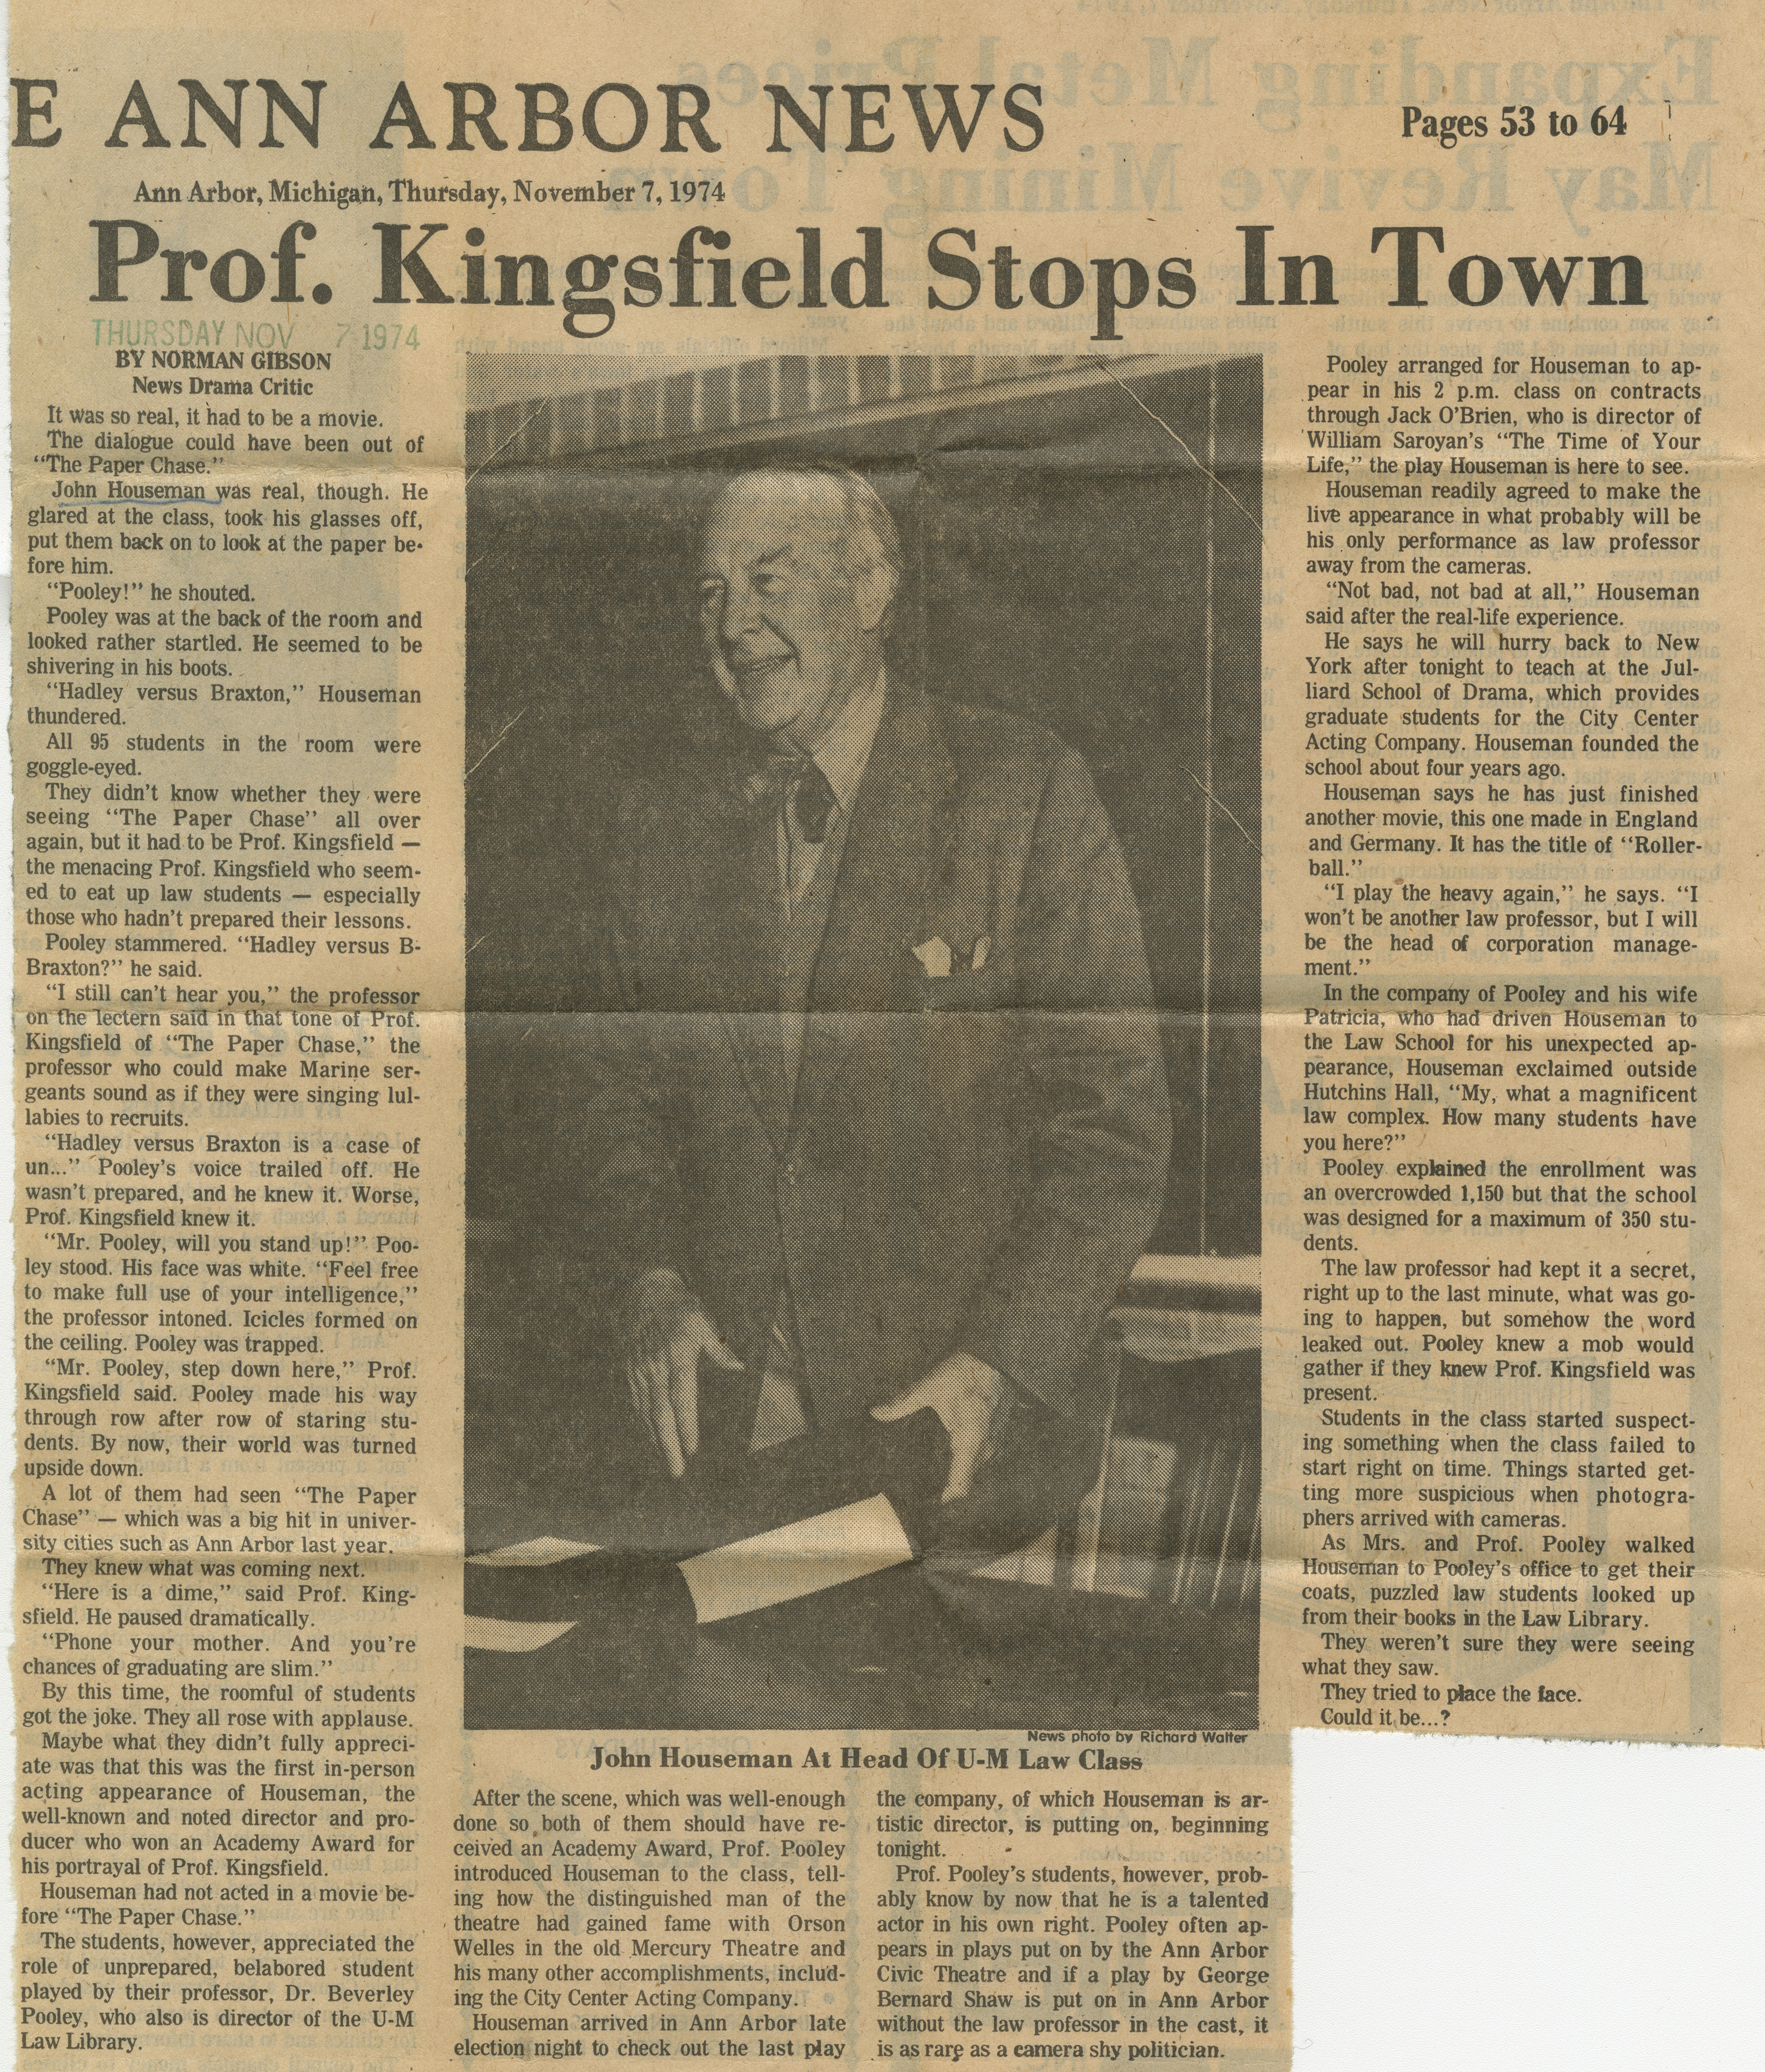 Prof. Kingsfield Stops In Town image